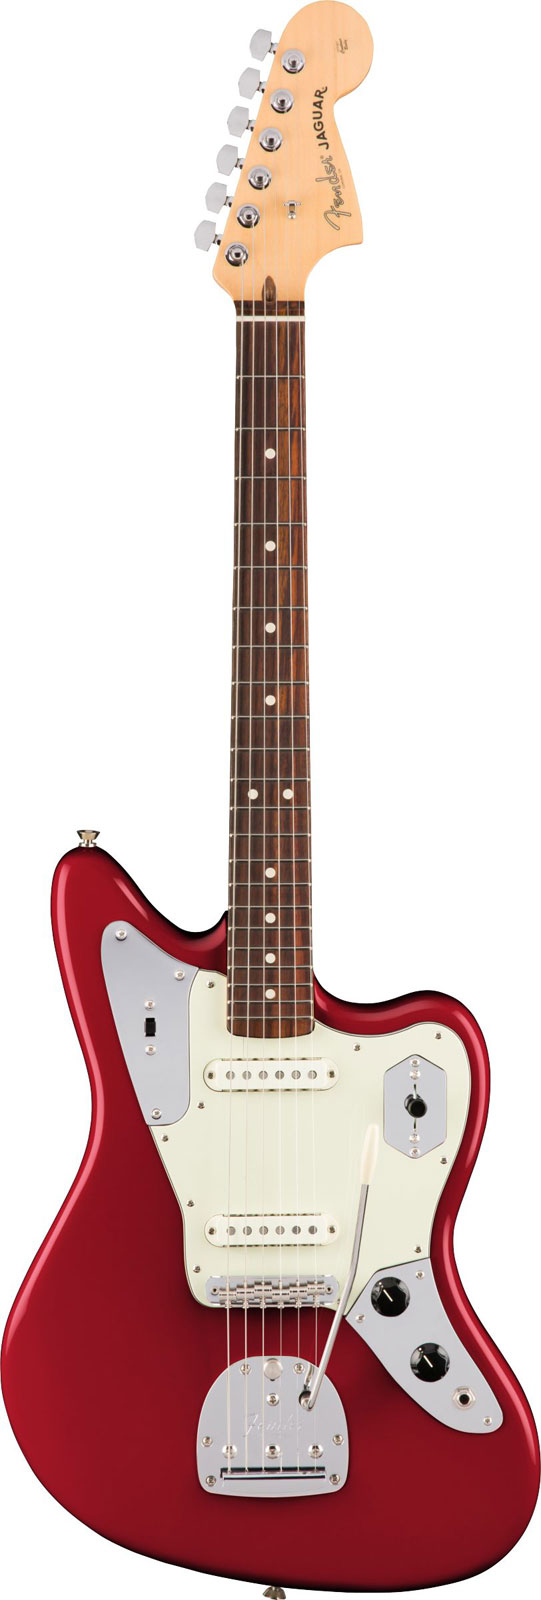 Fender American Pro Jaguar Rw Candy Apple Red